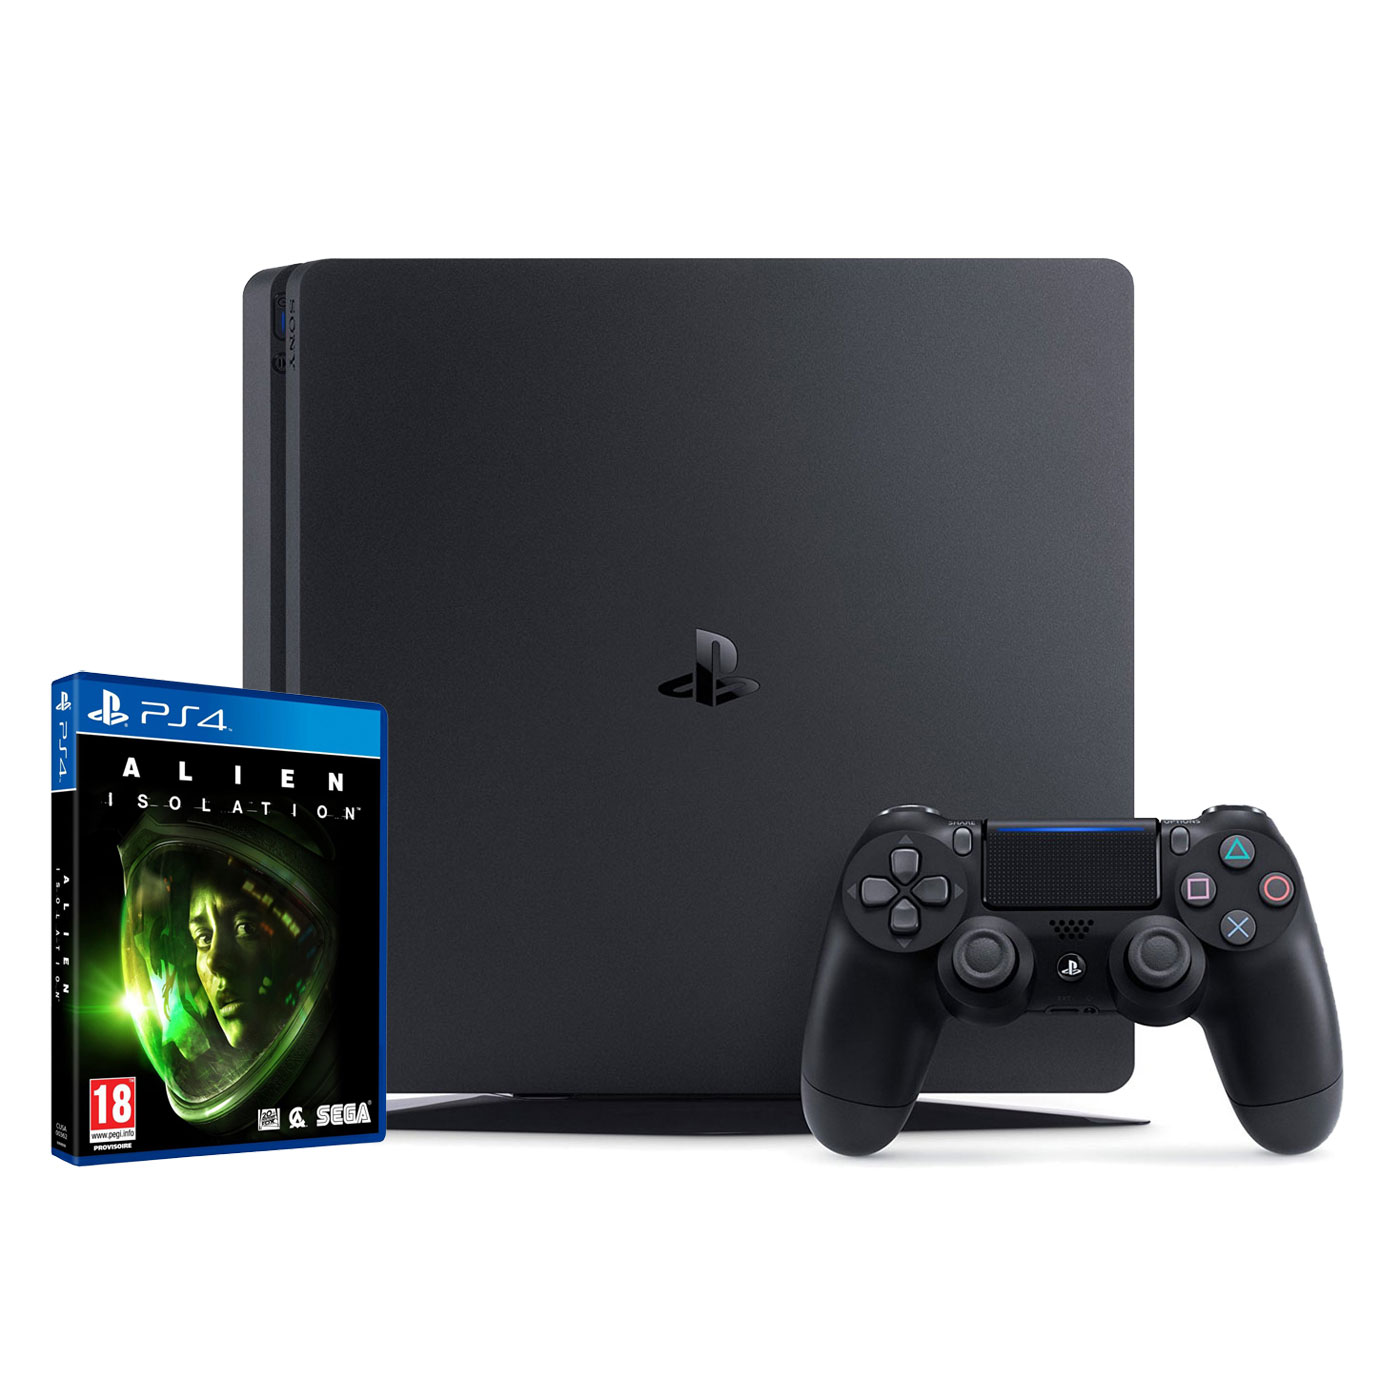 sony playstation 4 slim 500 go alien isolation ps4 offert console ps4 sony. Black Bedroom Furniture Sets. Home Design Ideas